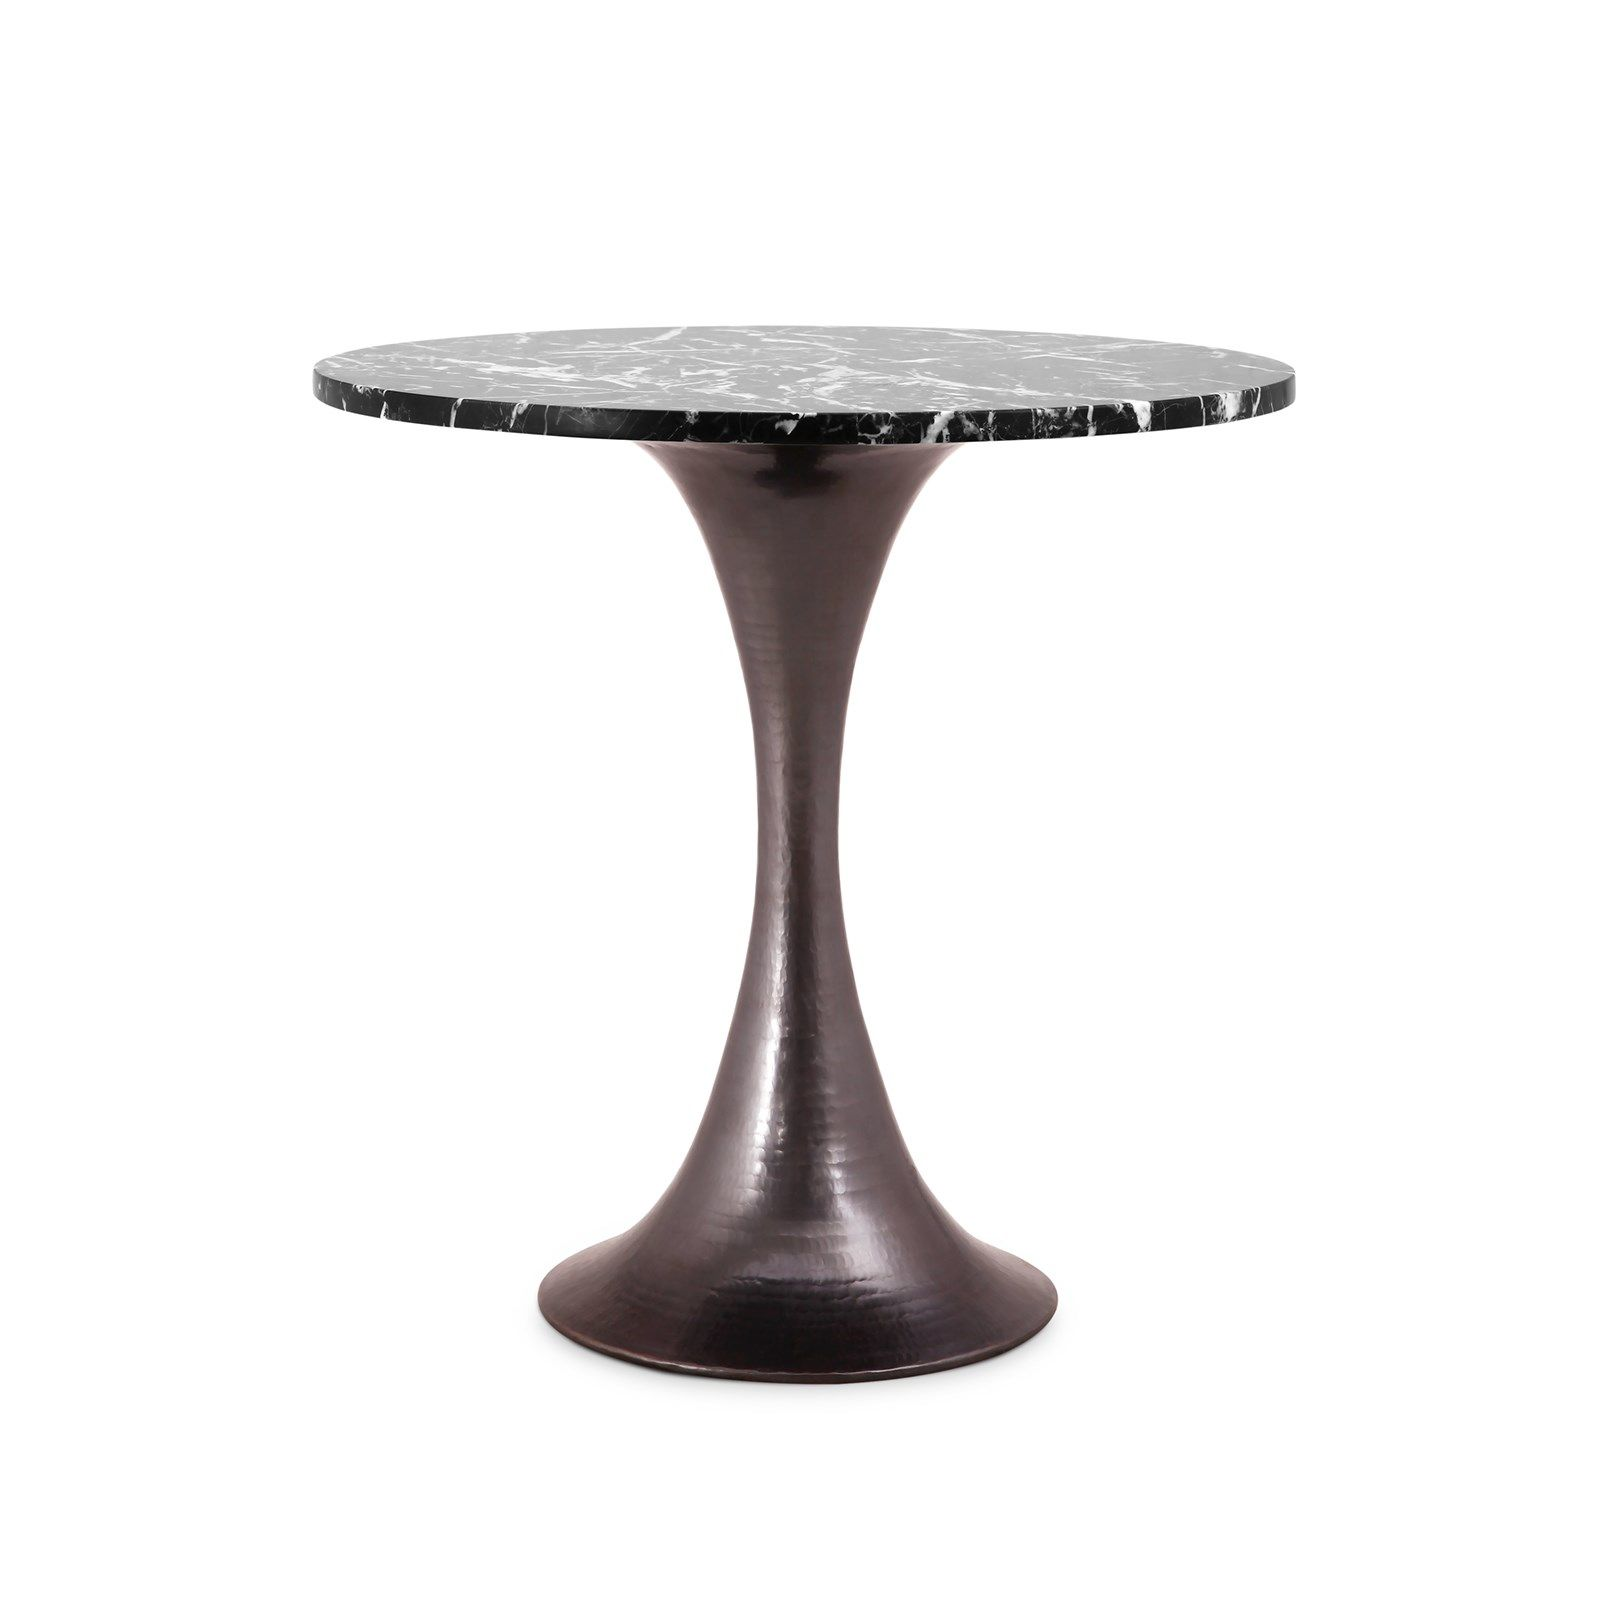 stockholm side table nero marquina marble top villa vici black bronze base timor wood trunk accent furniture and interior design resource new orleans legs tall white bookcase